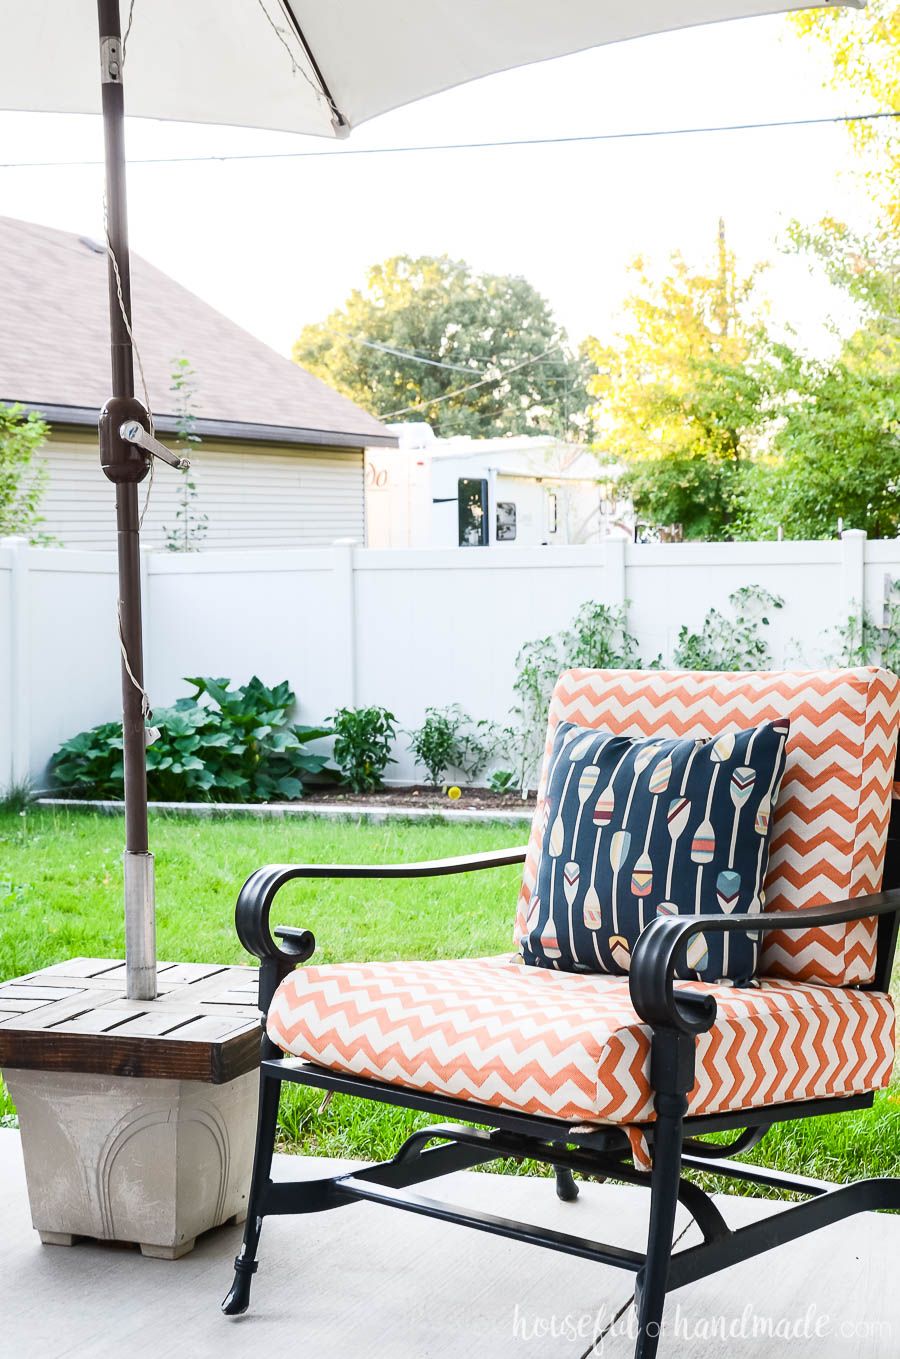 Handmade umbrella stand side table next to orange and white striped outdoor chair is one of our favorite outdoor living spaces.